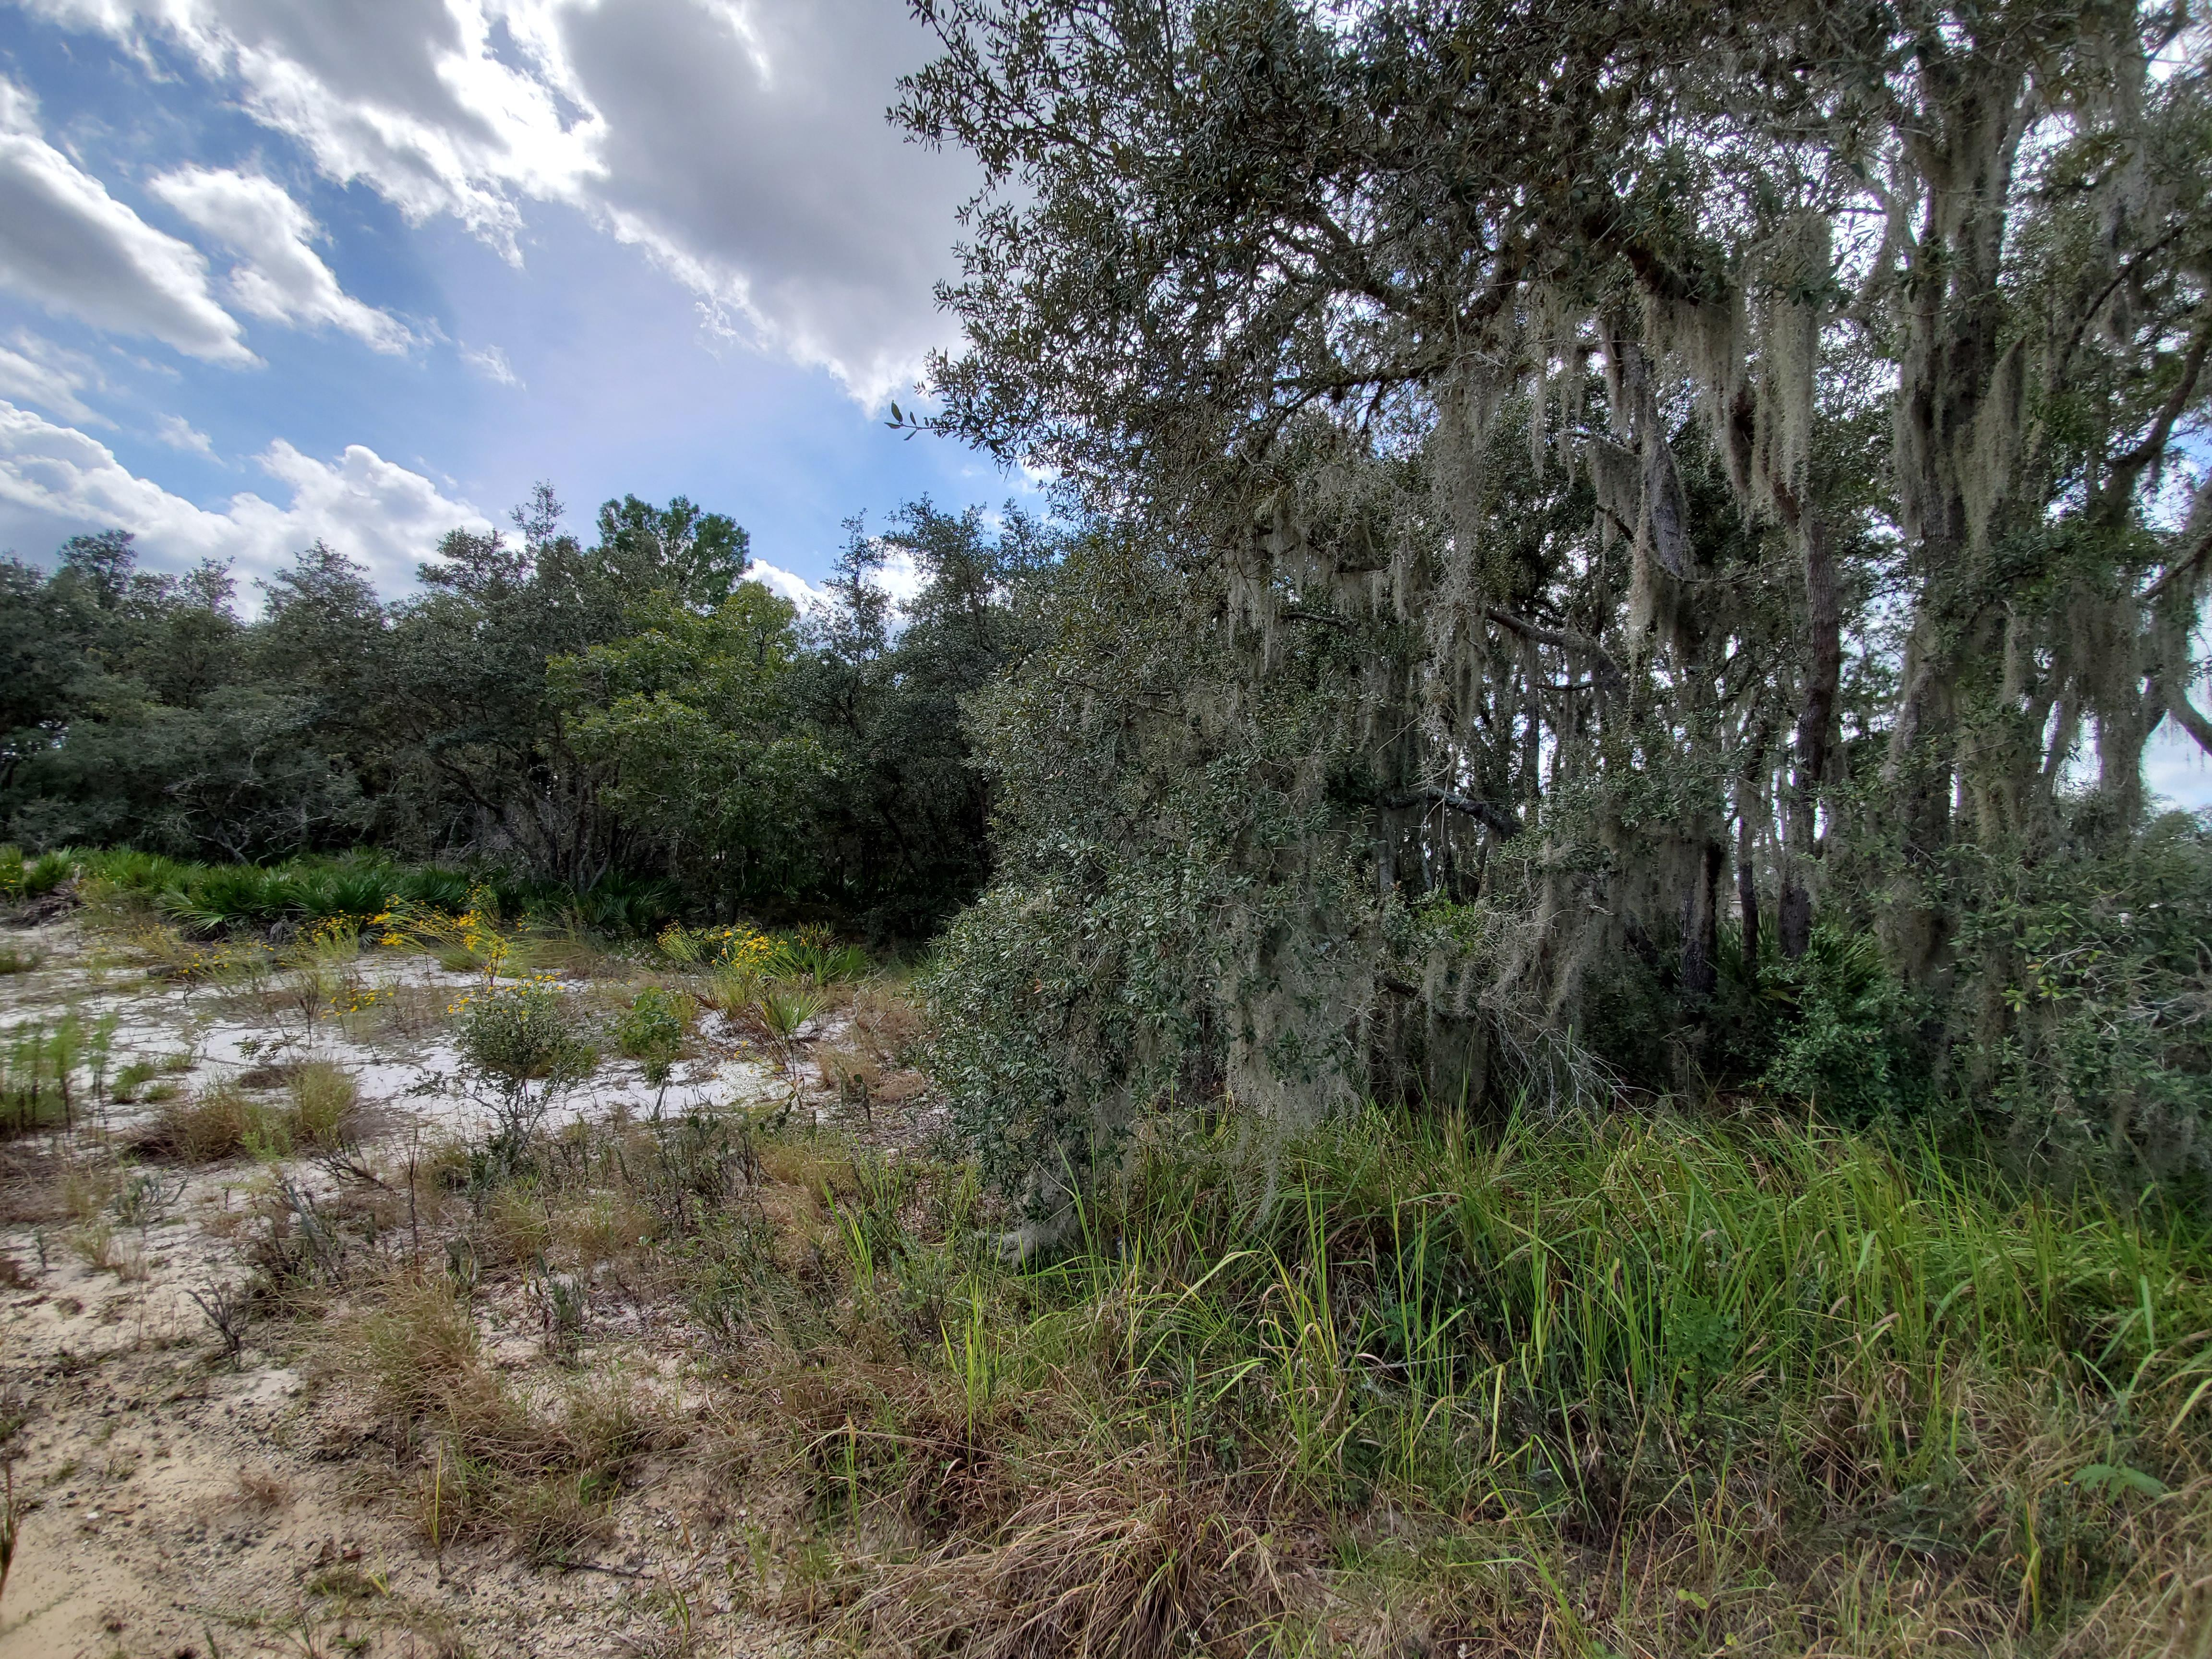 Residential Lot Close to Lake Olivia - Image 1